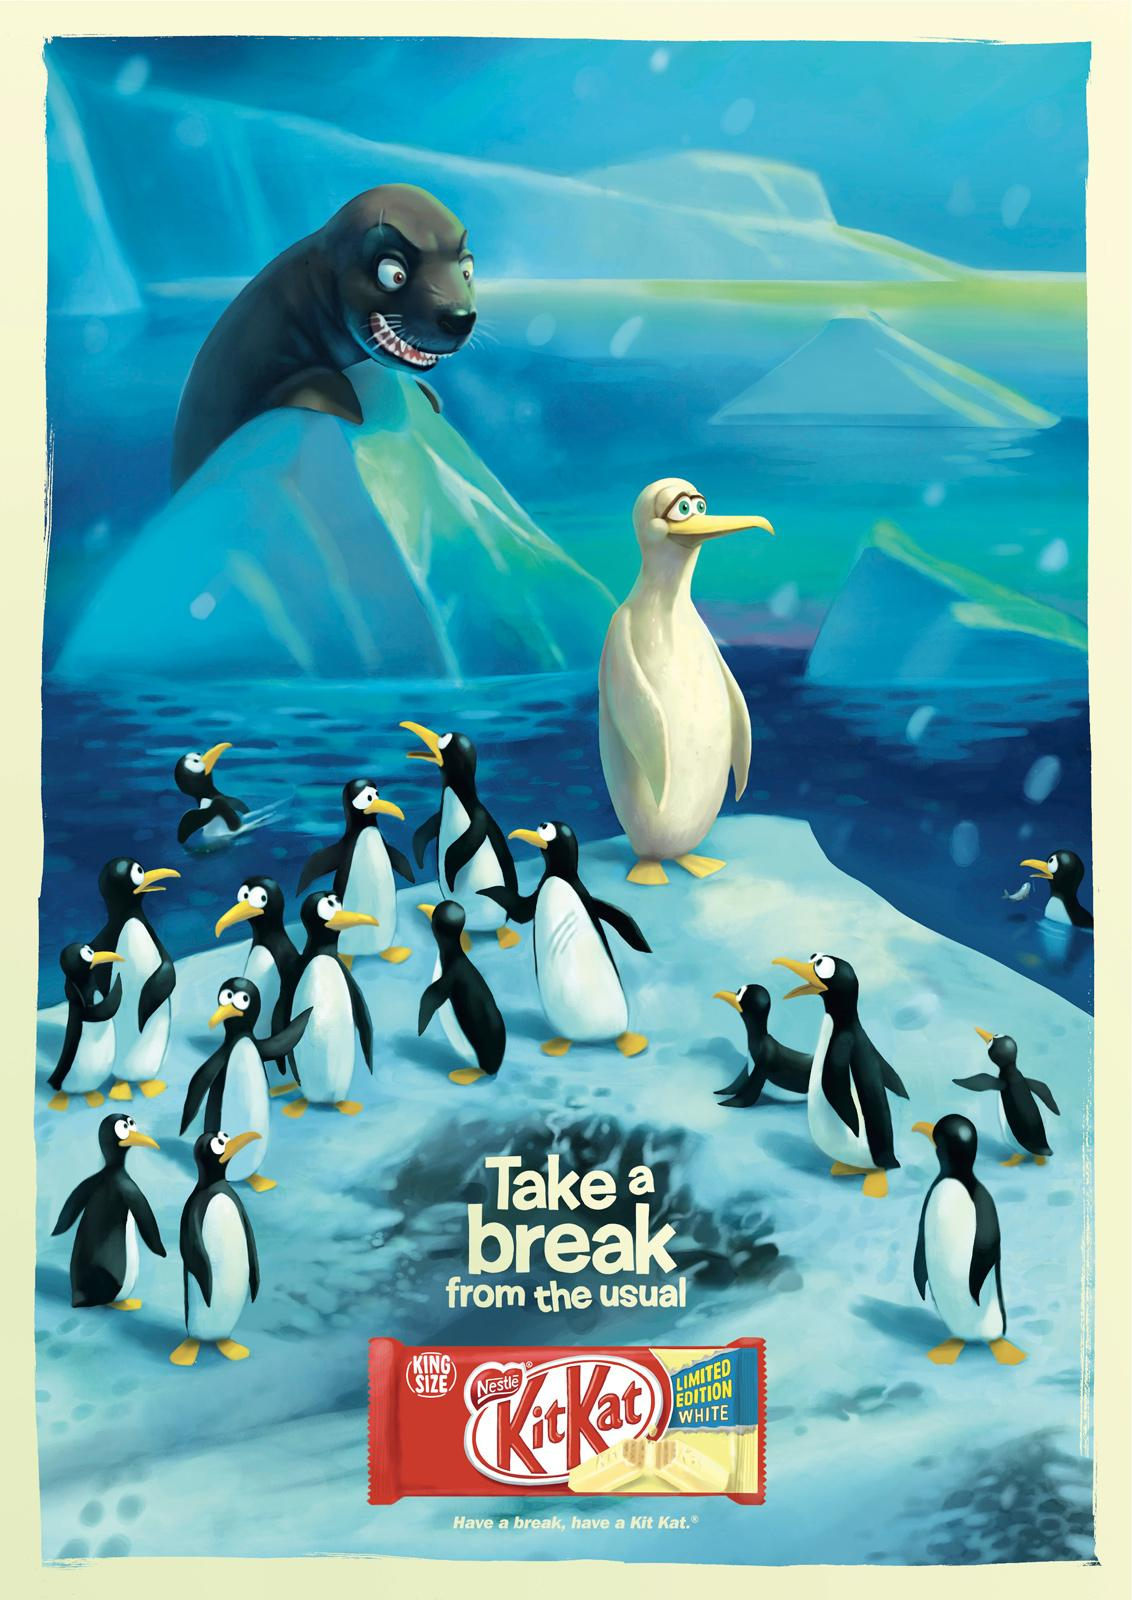 Kit Kat Outdoor Ad -  Take a break from the usual, Penguin